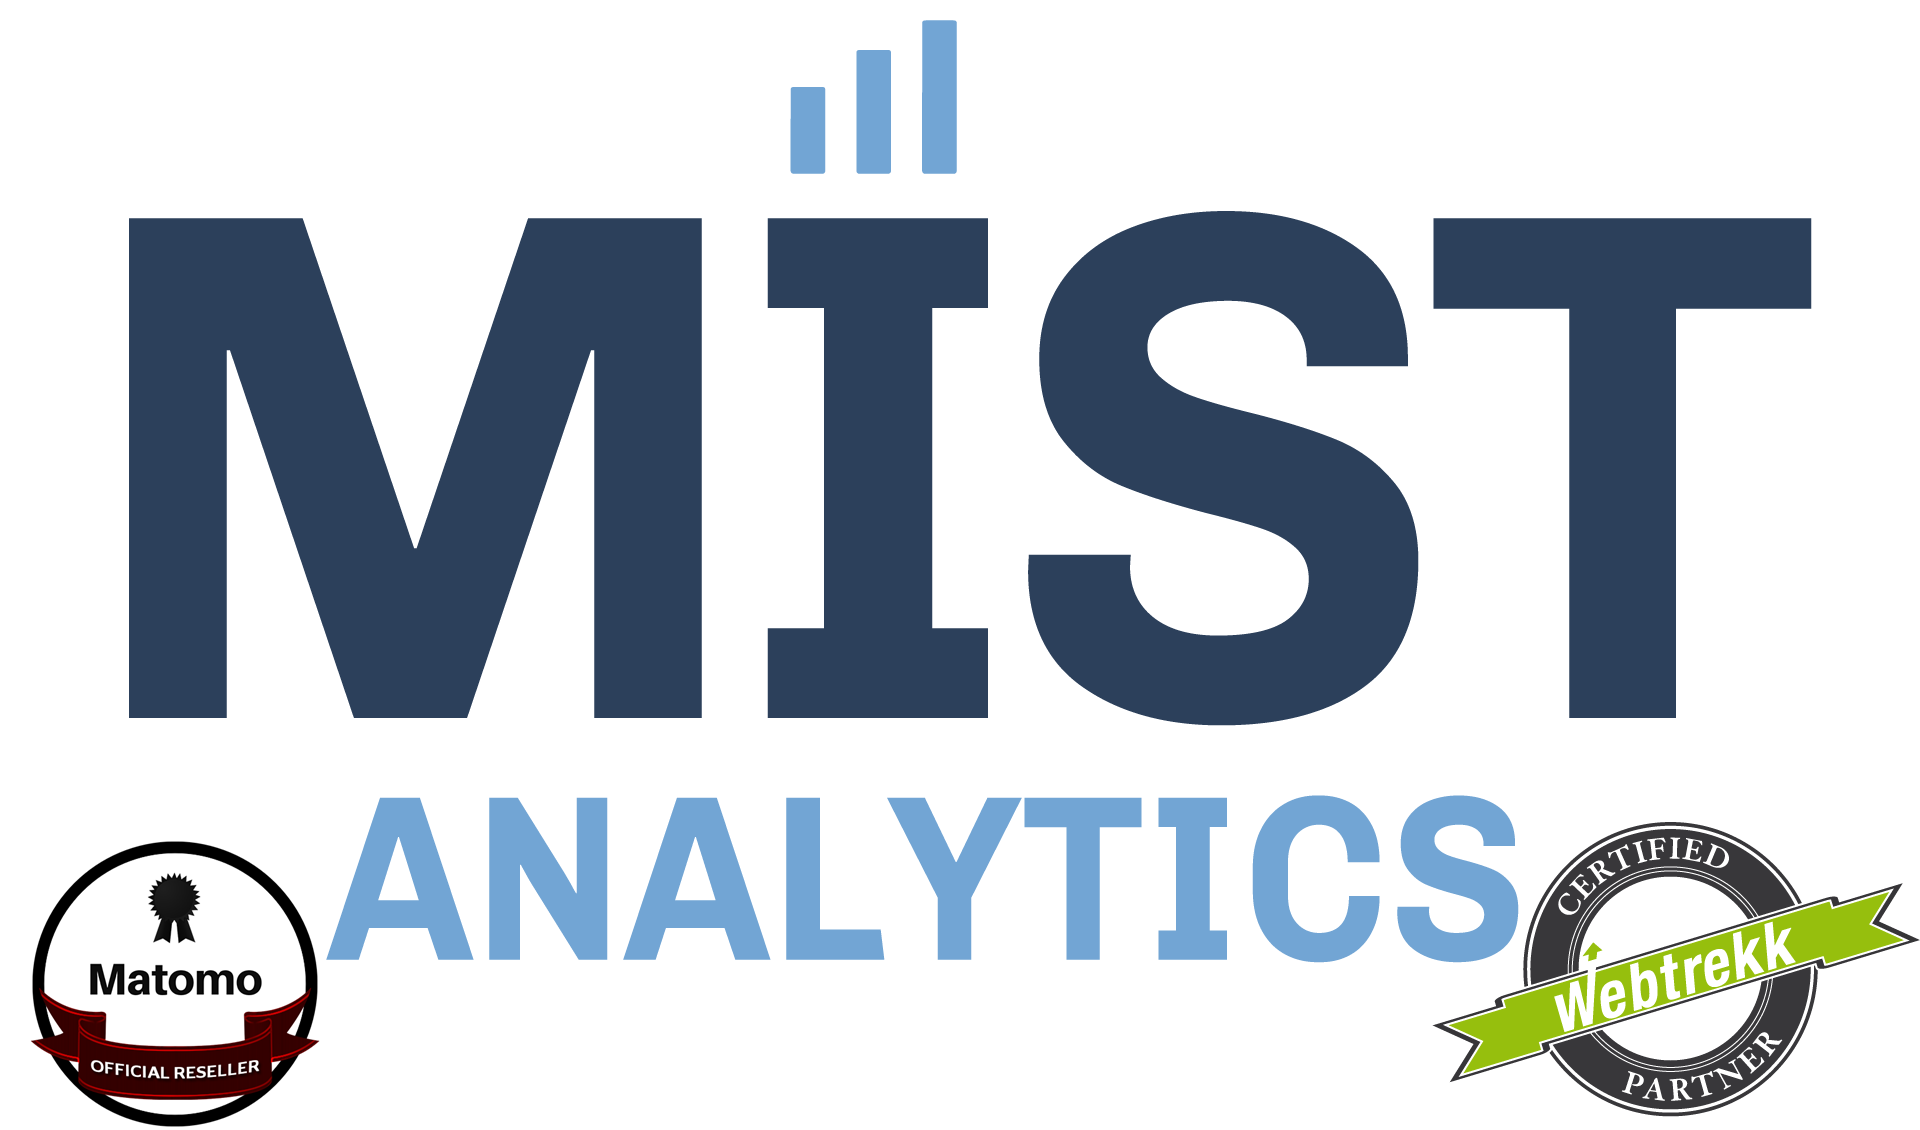 Over MIST Analytics